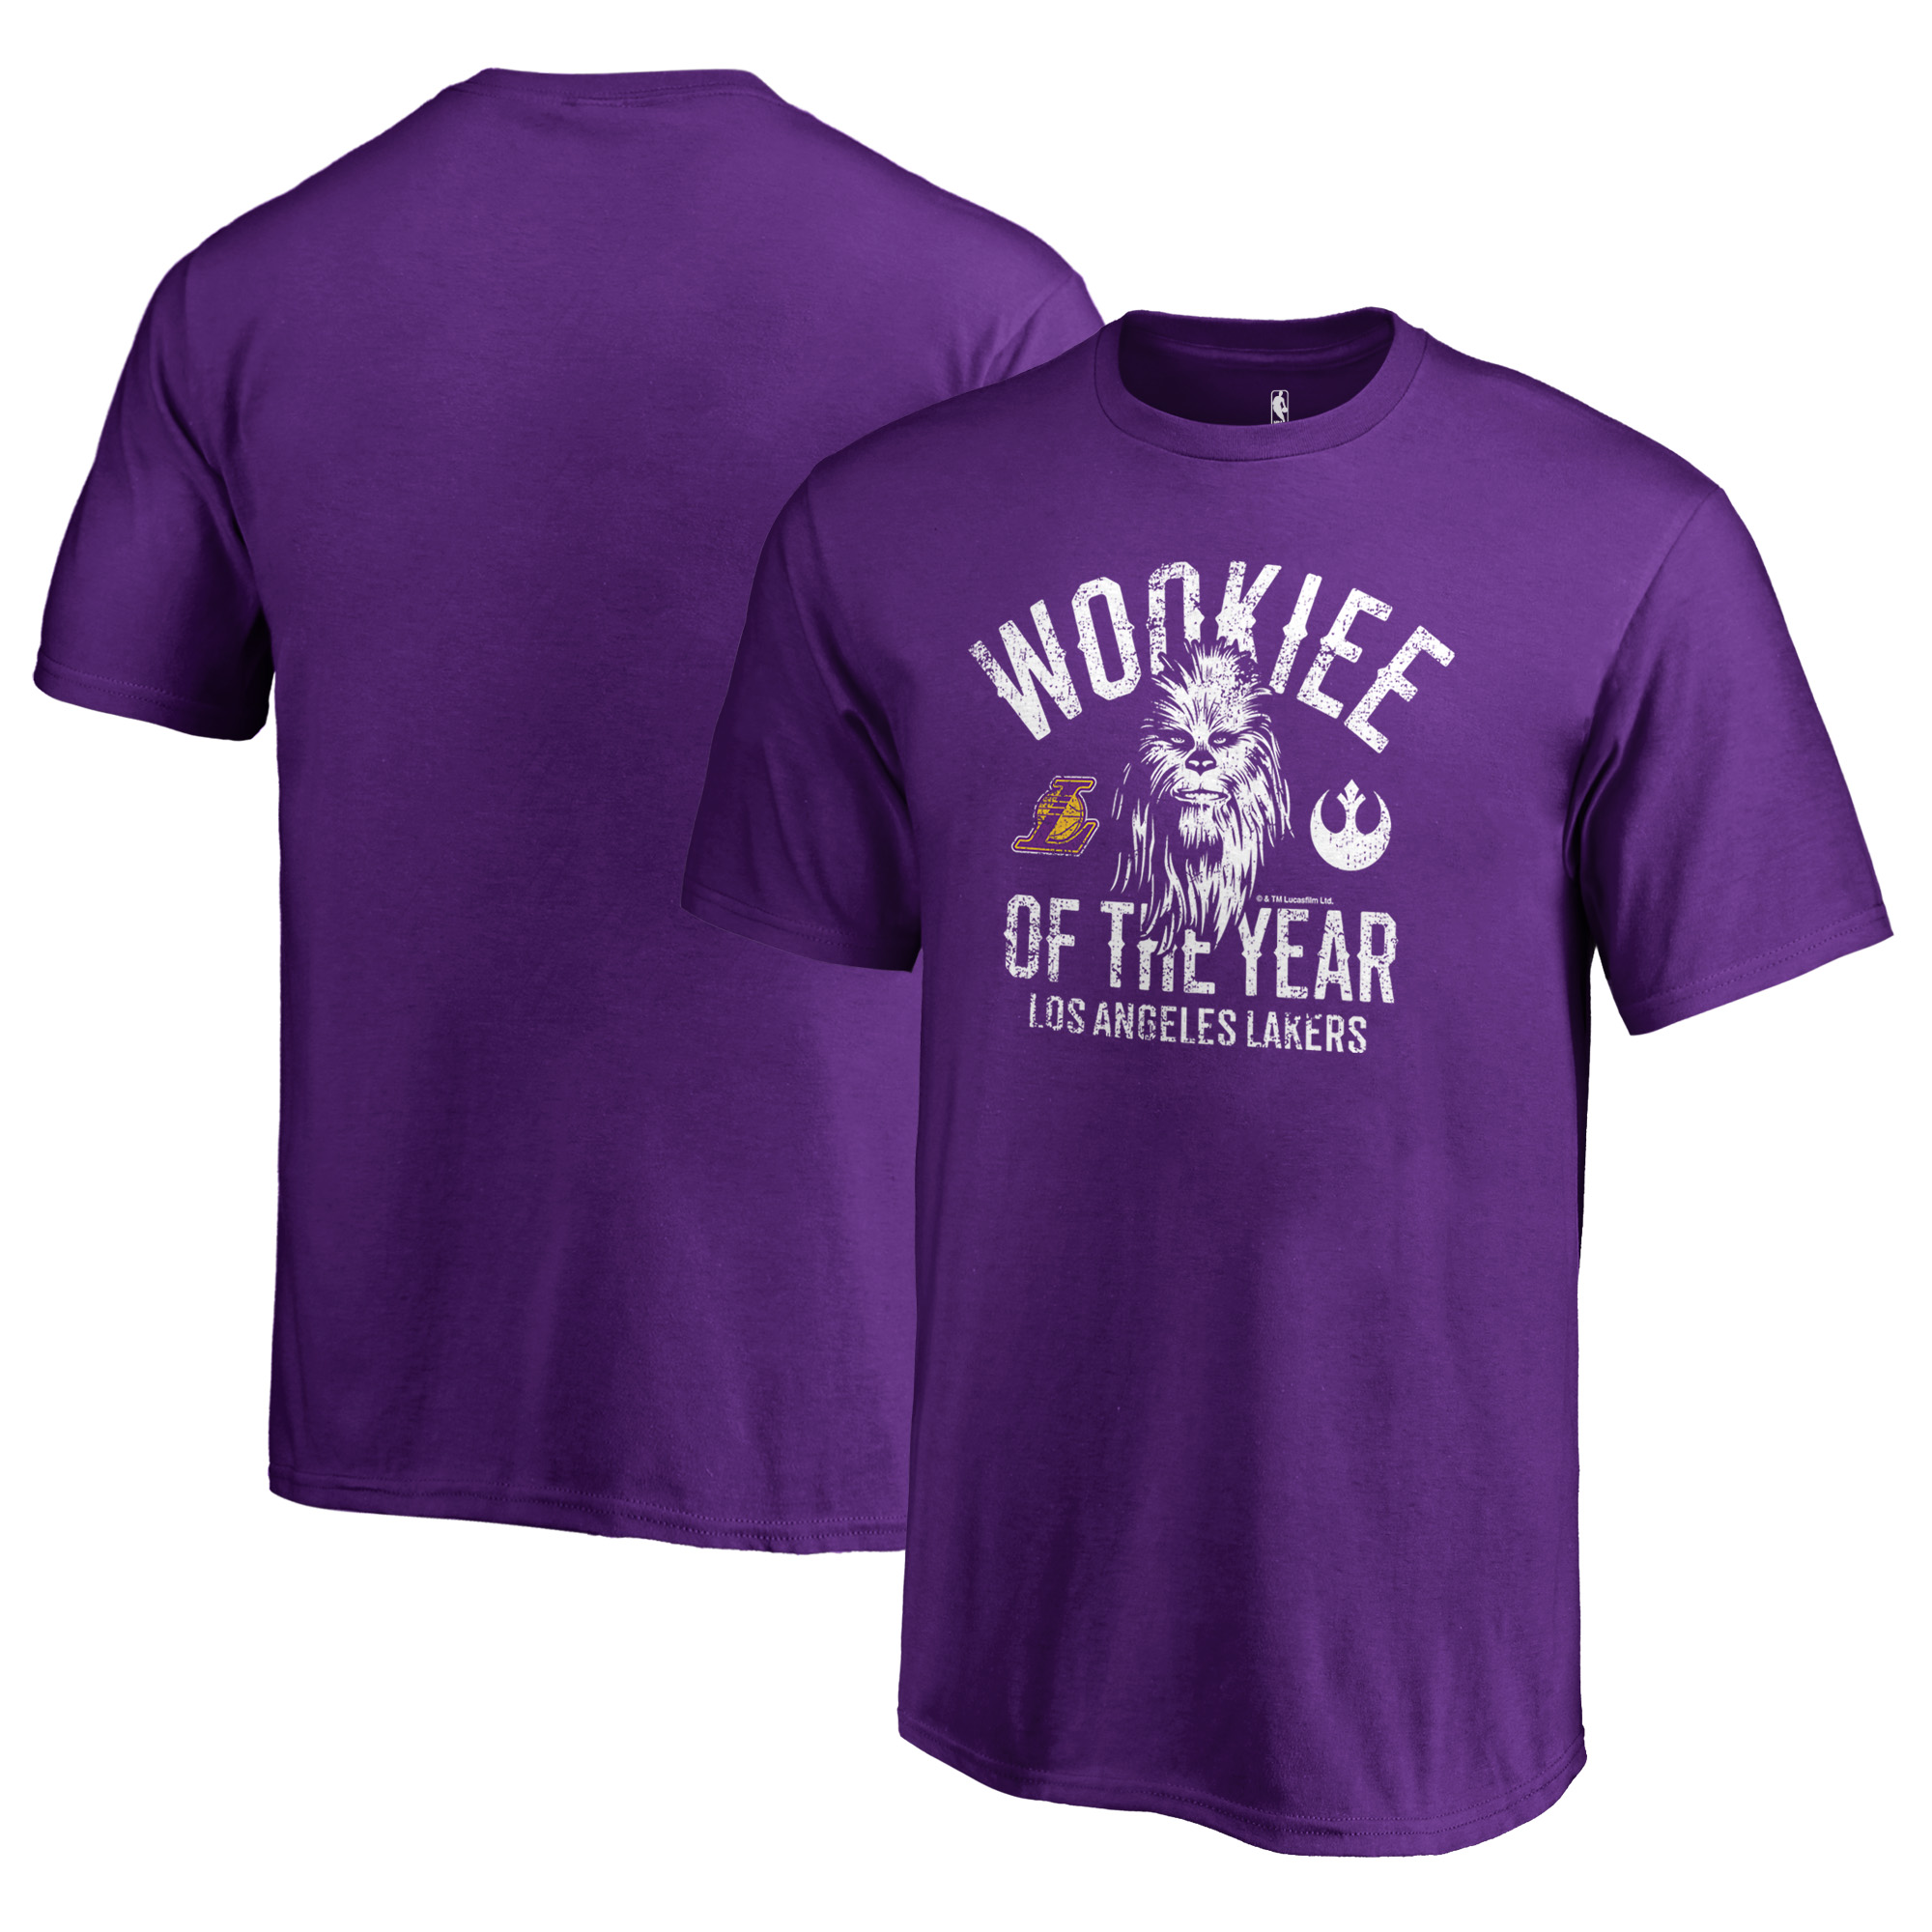 Los Angeles Lakers Fanatics Branded Youth Star Wars Wookie of the Year T-Shirt - Purple